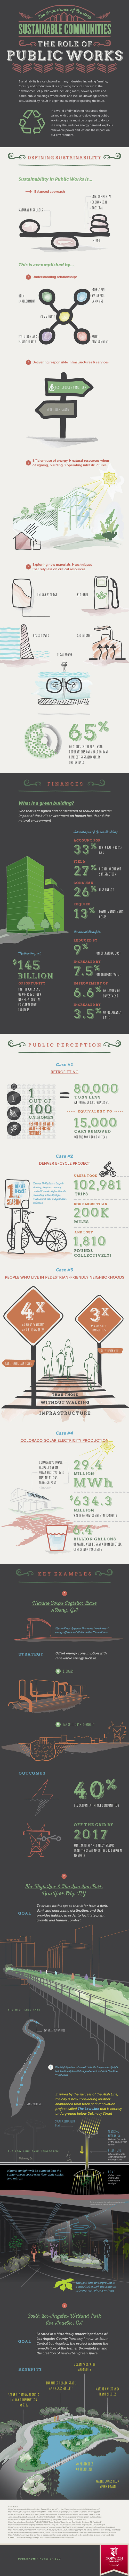 Public Works and the Importance of Creating Sustainable Communities [infographic]